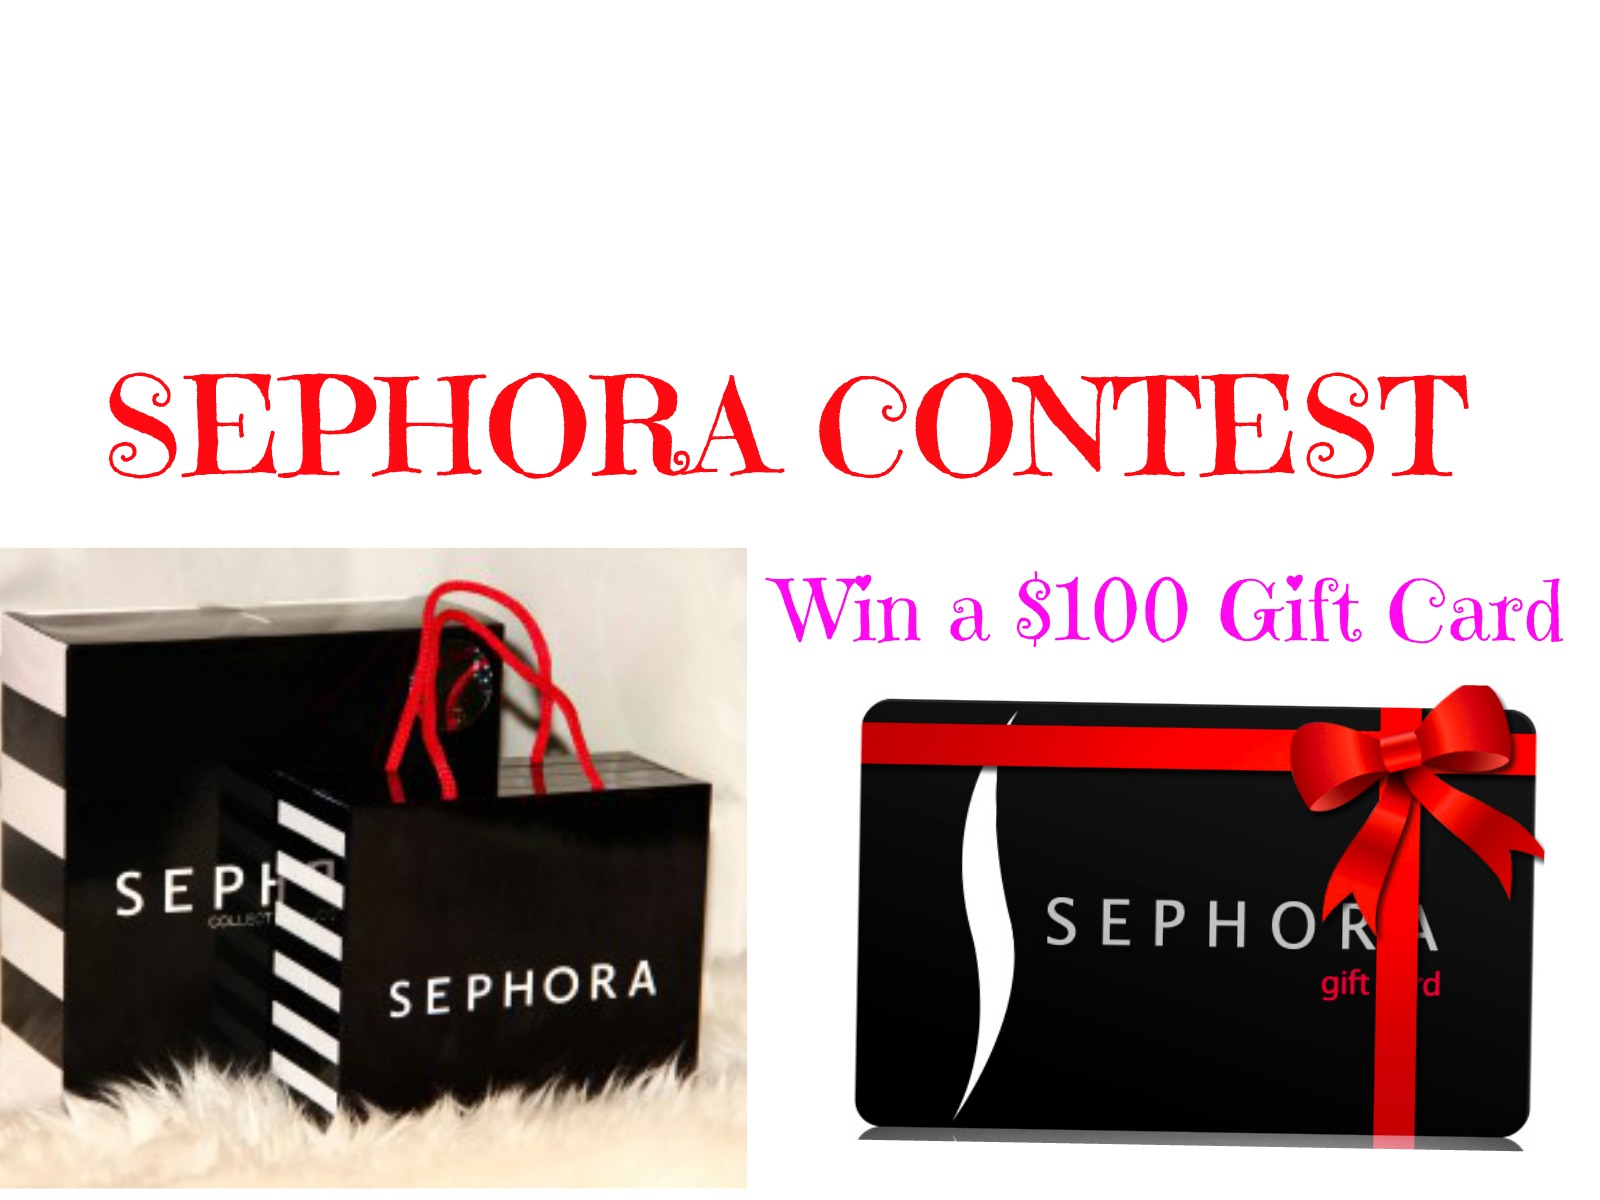 CONTEST: $100 SEPHORA GIFT CARD